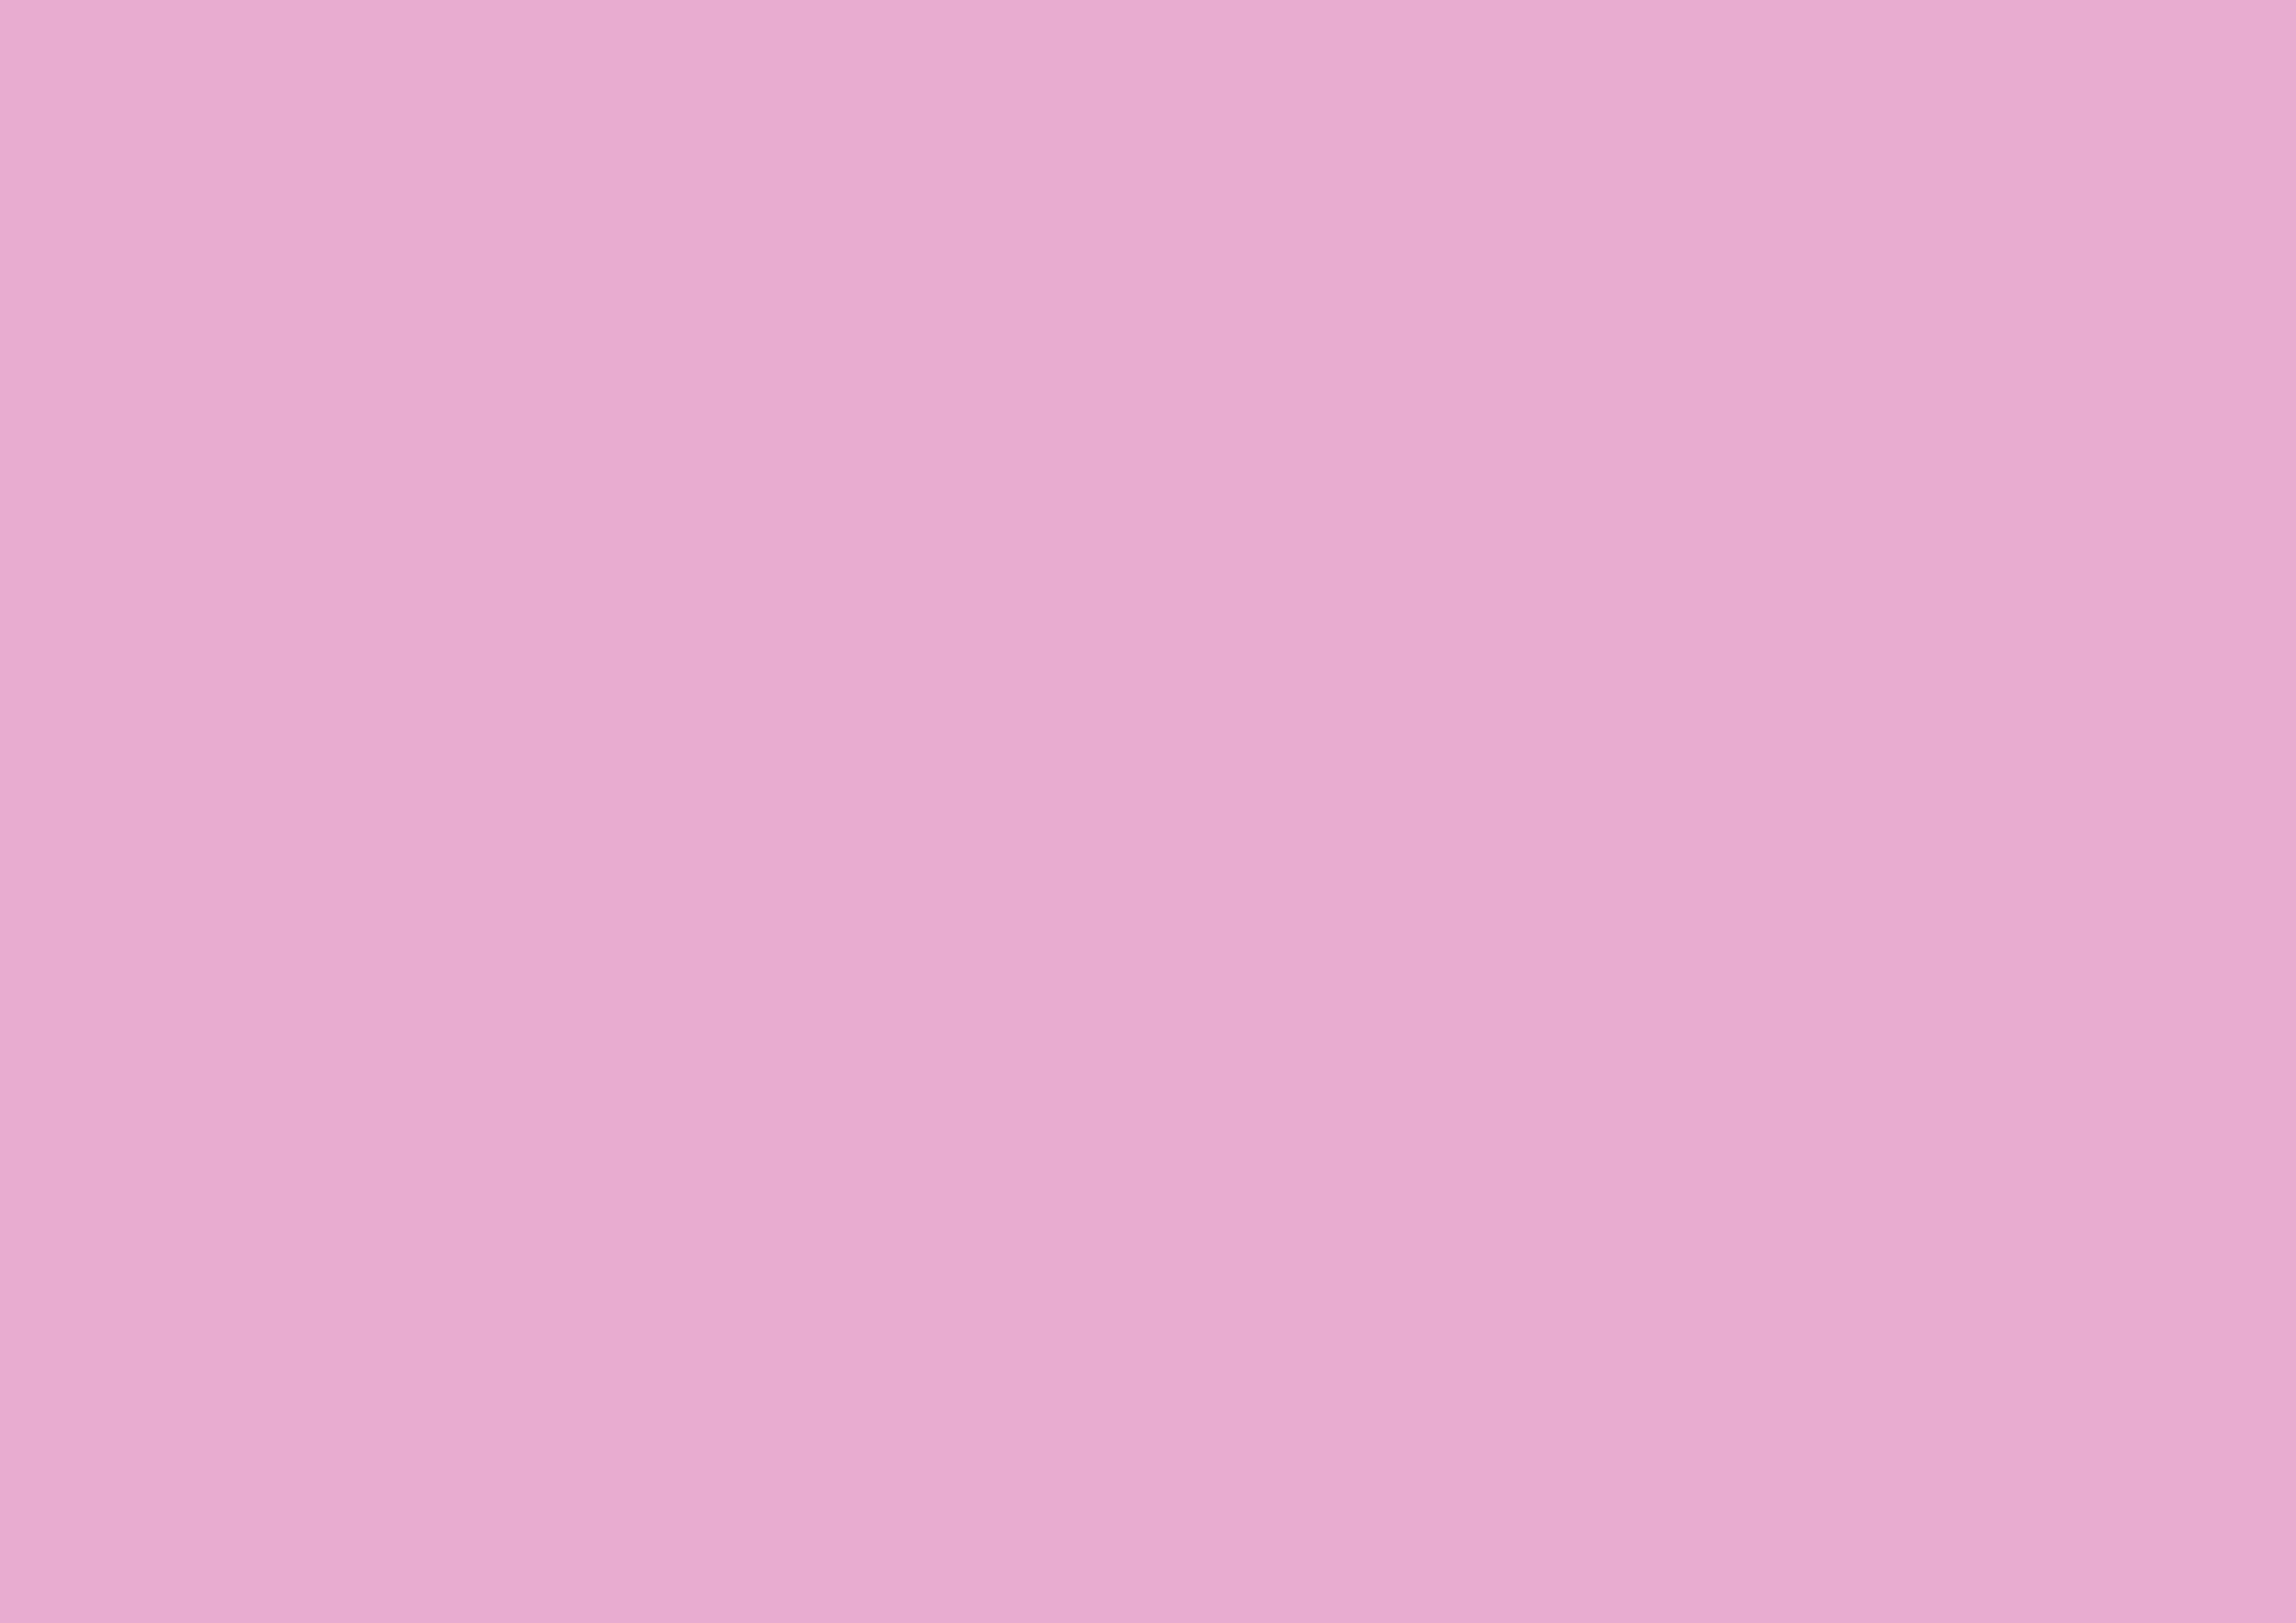 3508x2480 Pink Pearl Solid Color Background